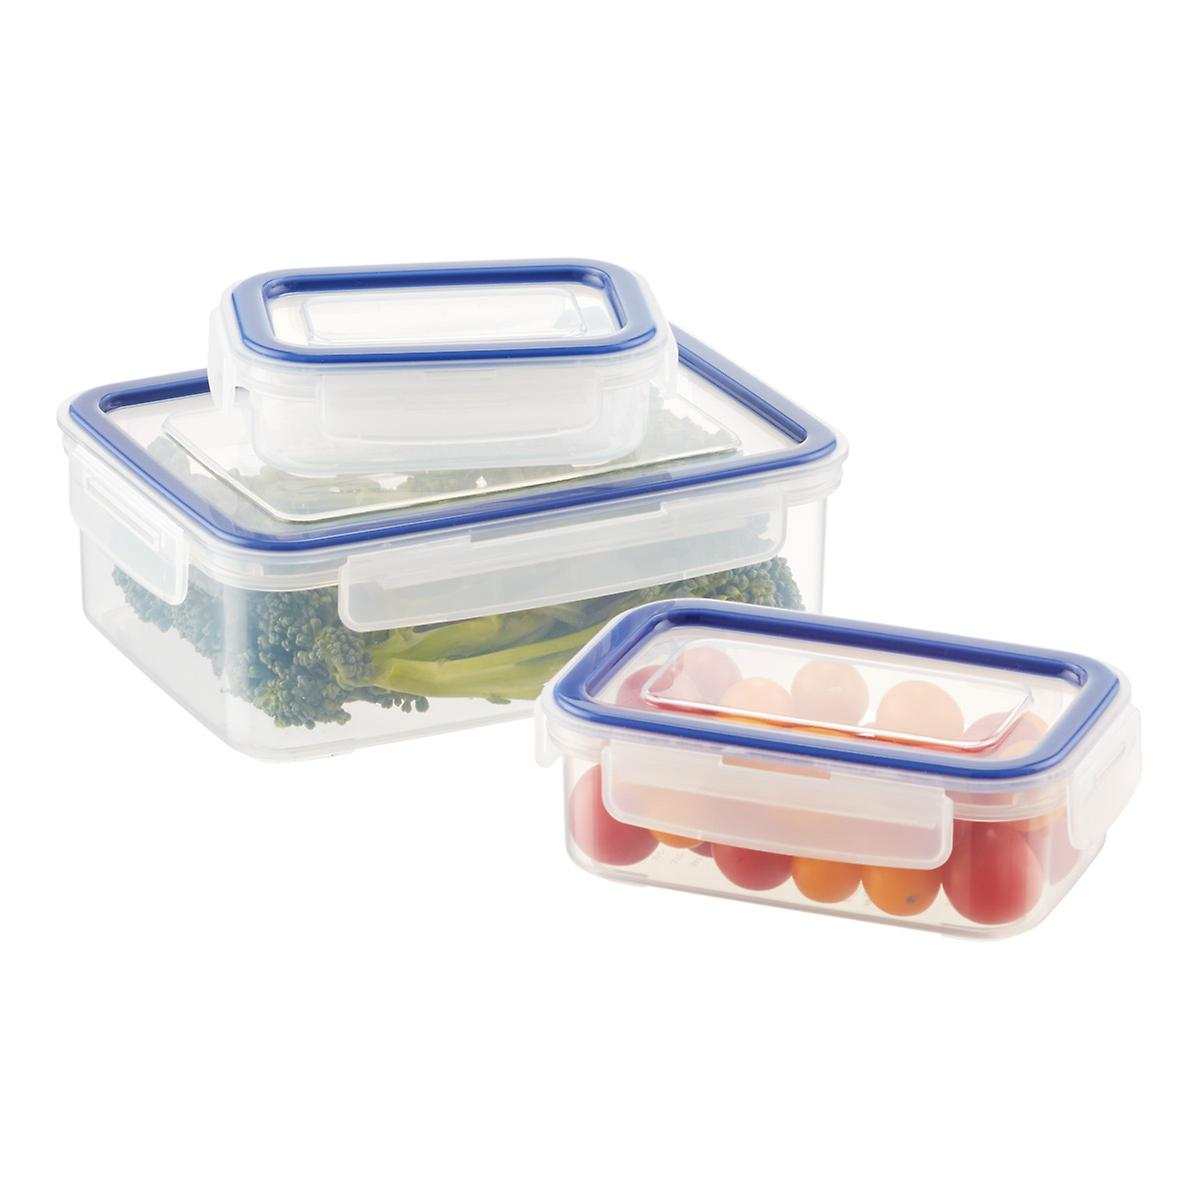 Rectangular Food Storage with Silicone Seals